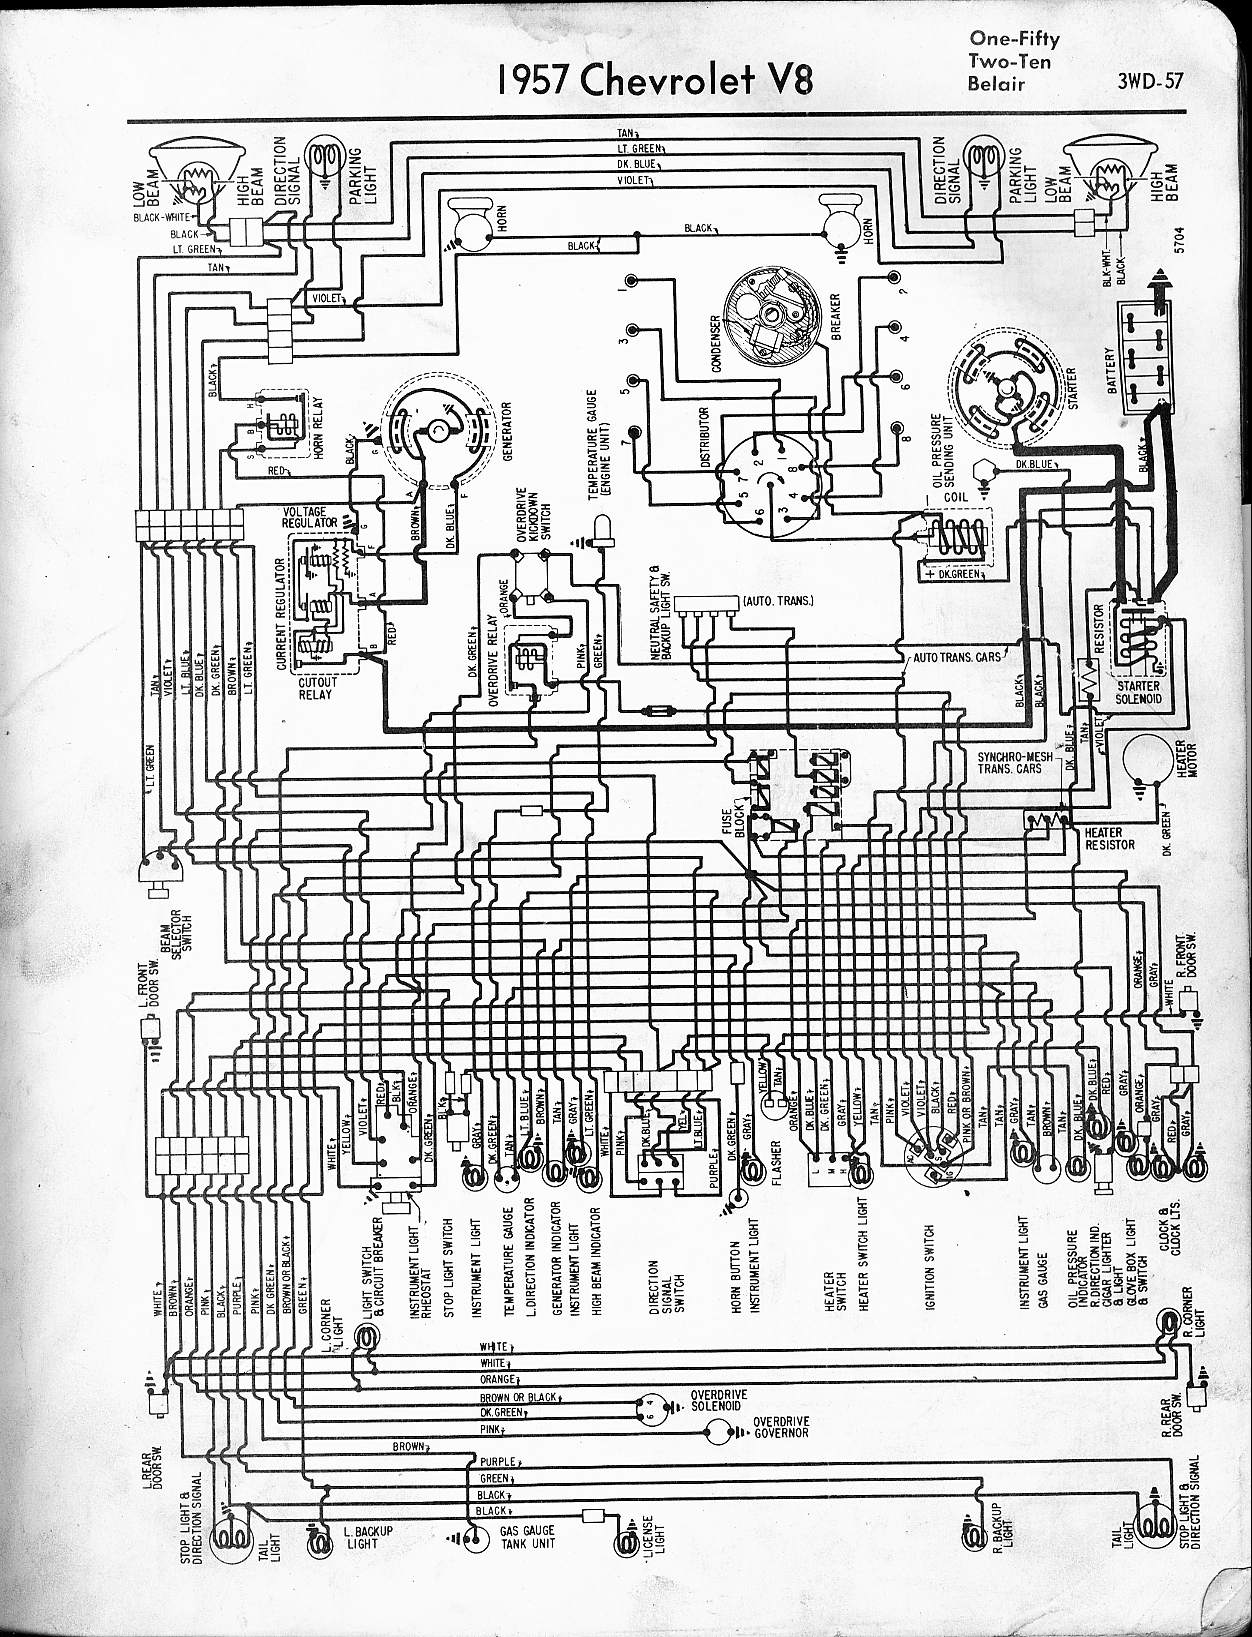 MWireChev57_3WD 057 neutral safety switch, 57 powerglide trifive com, 1955 chevy 1956 Bel Air Wiring Diagram at reclaimingppi.co